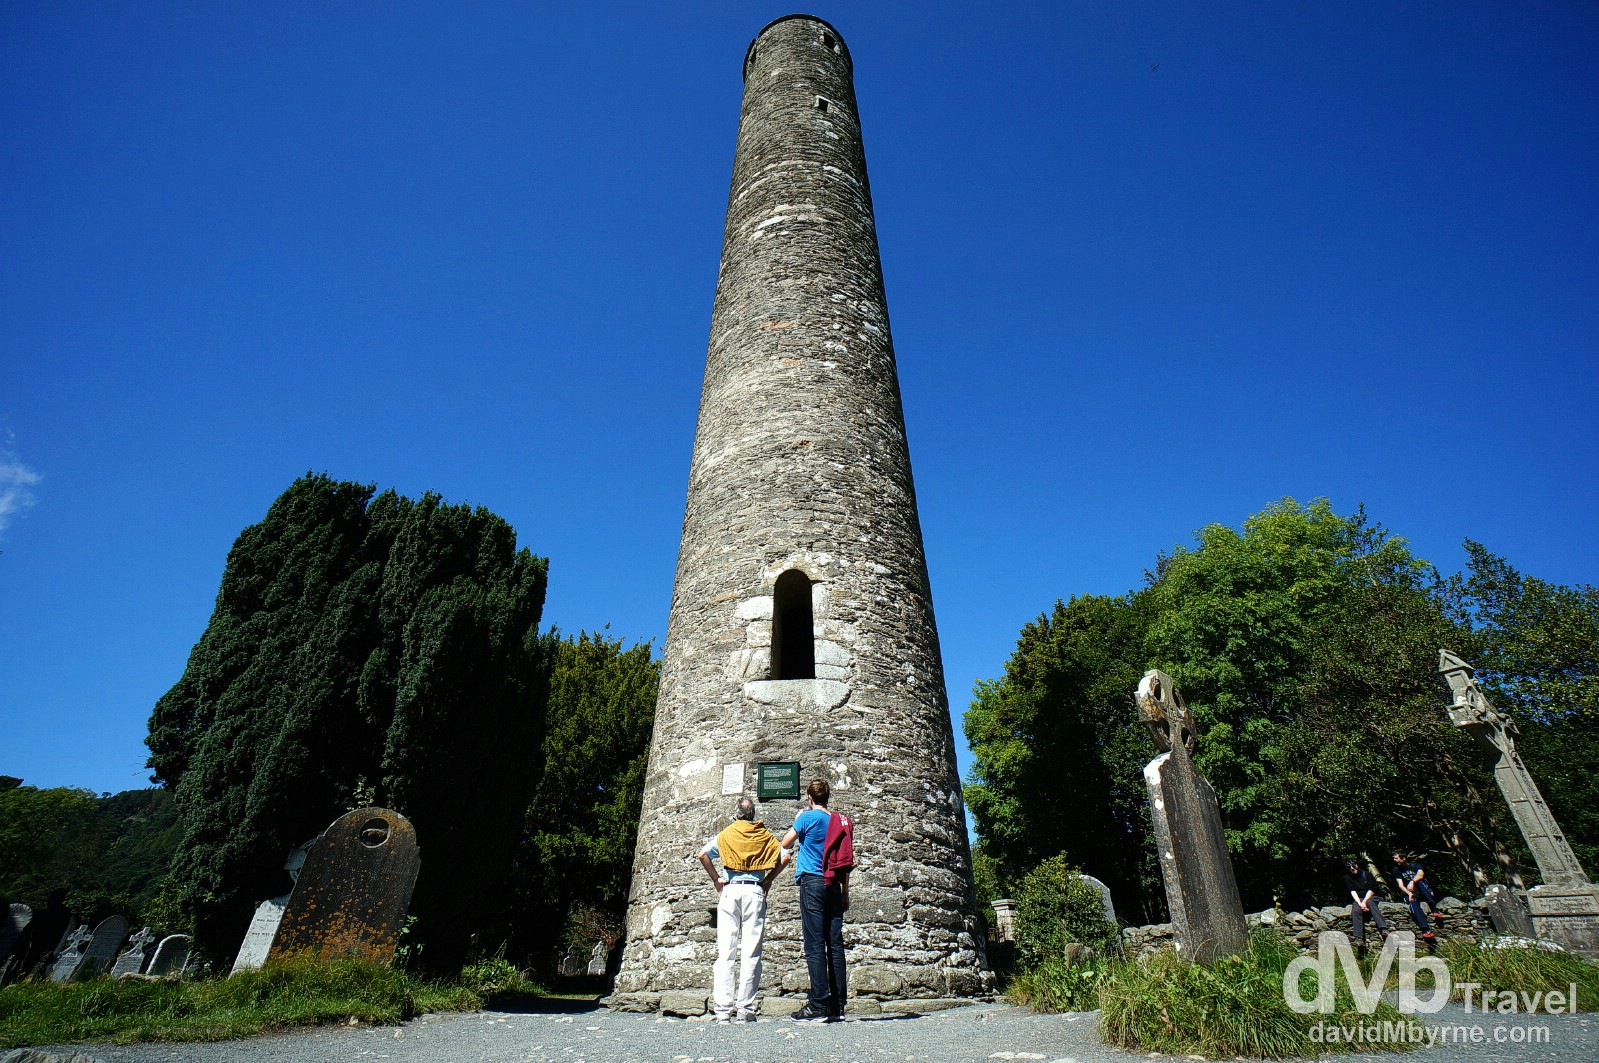 Admiring the Round Tower in Glendalough, Co. Wicklow, Ireland. August 31, 2014.